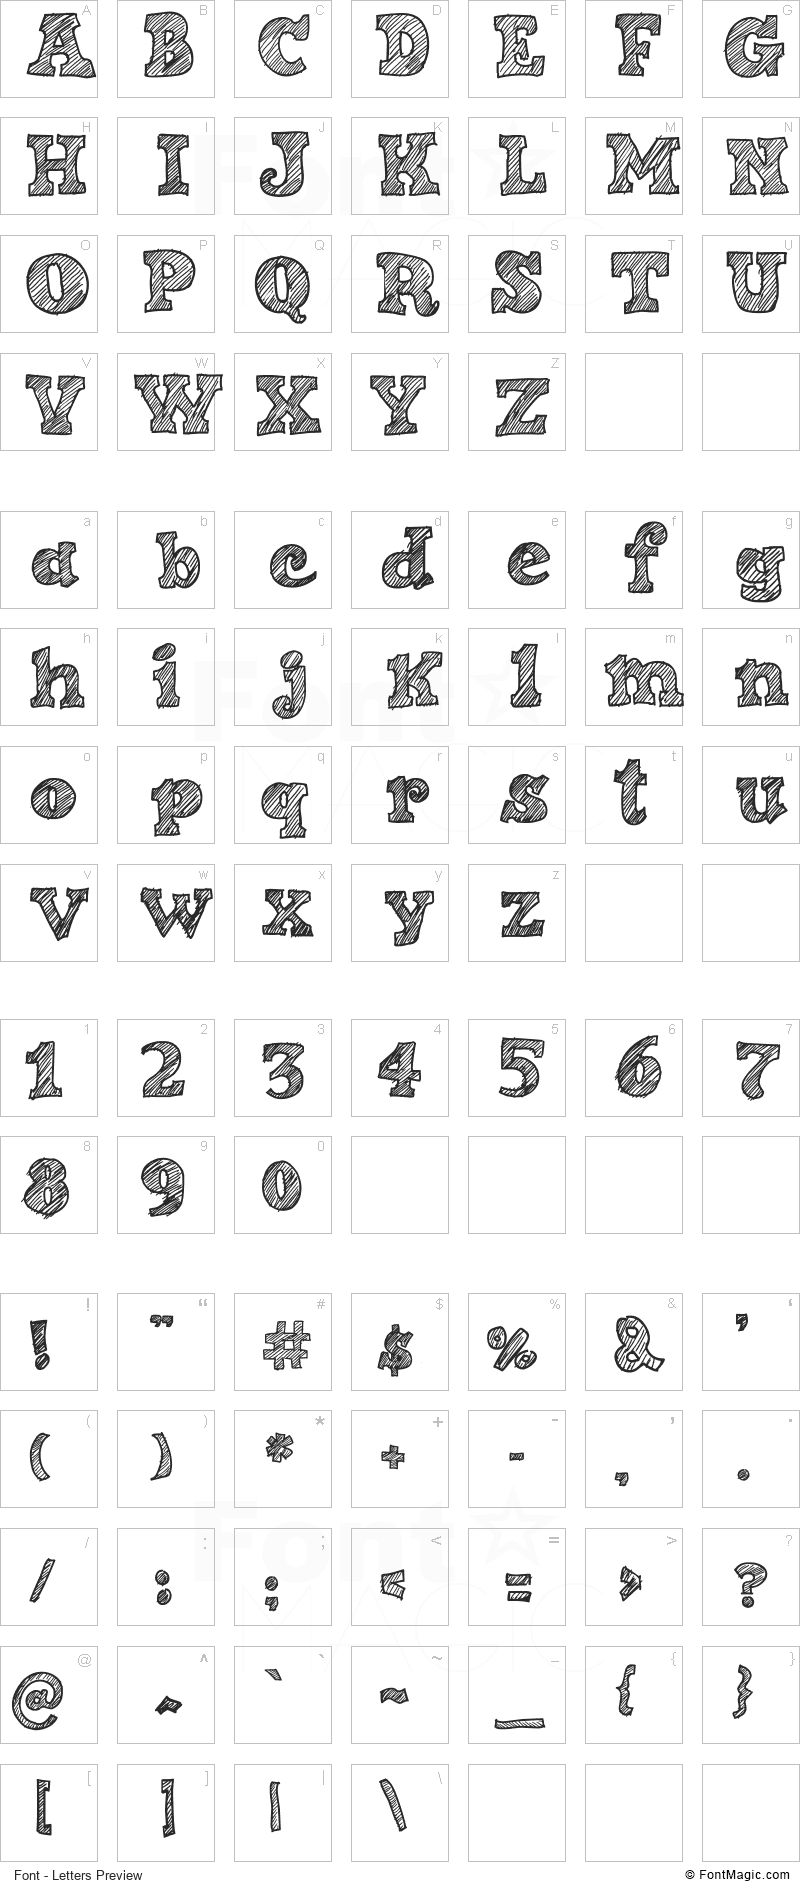 Sketch Nice Font - All Latters Preview Chart